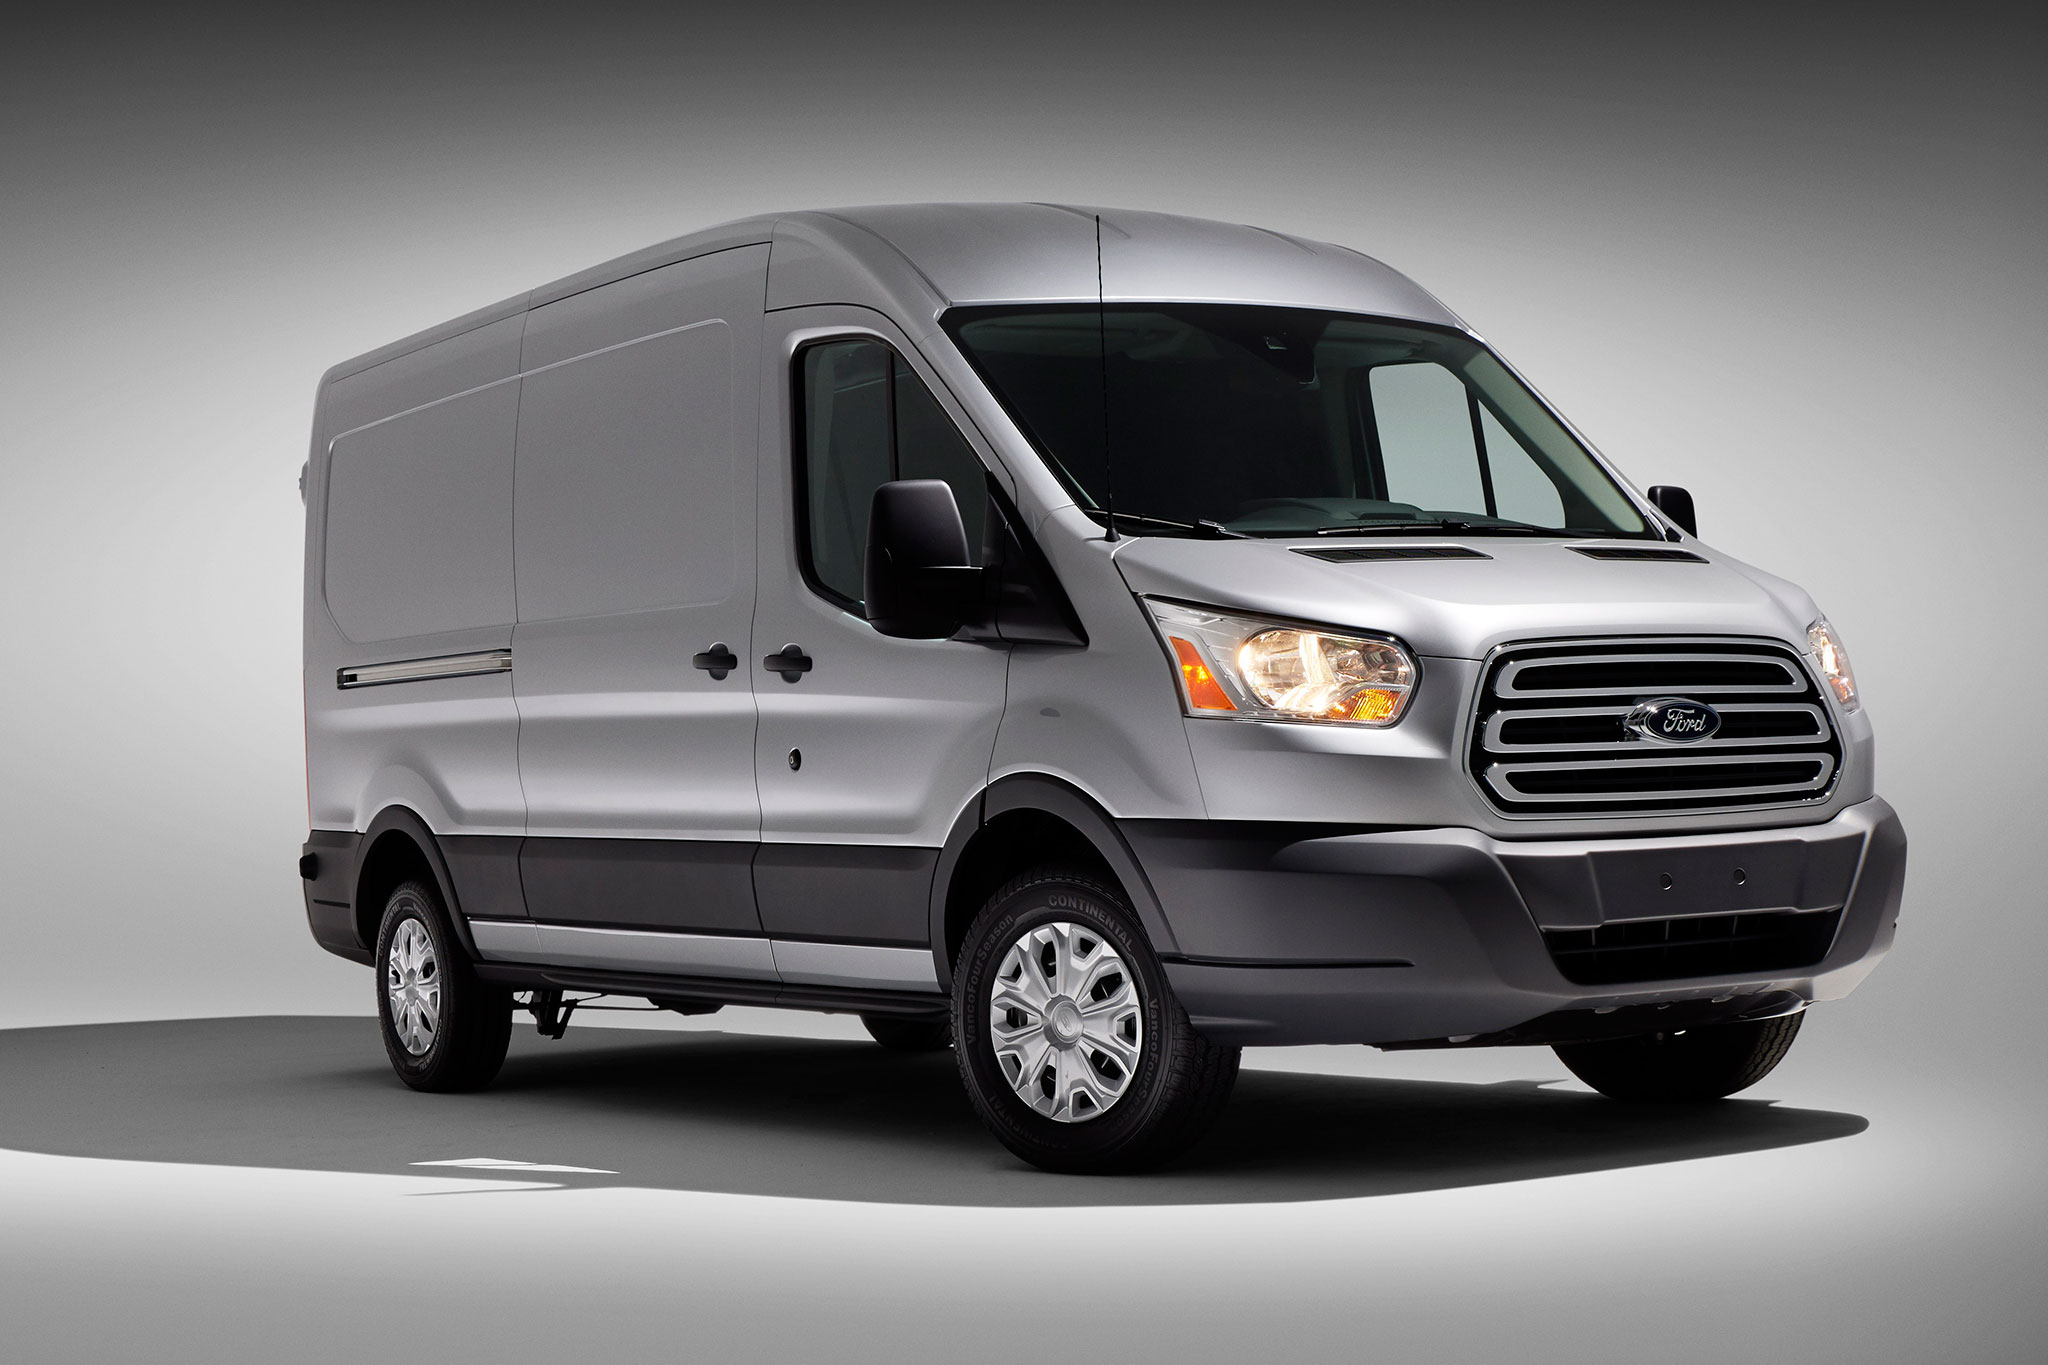 2015 Ford Transit Review, Connect, Wagon, MPG